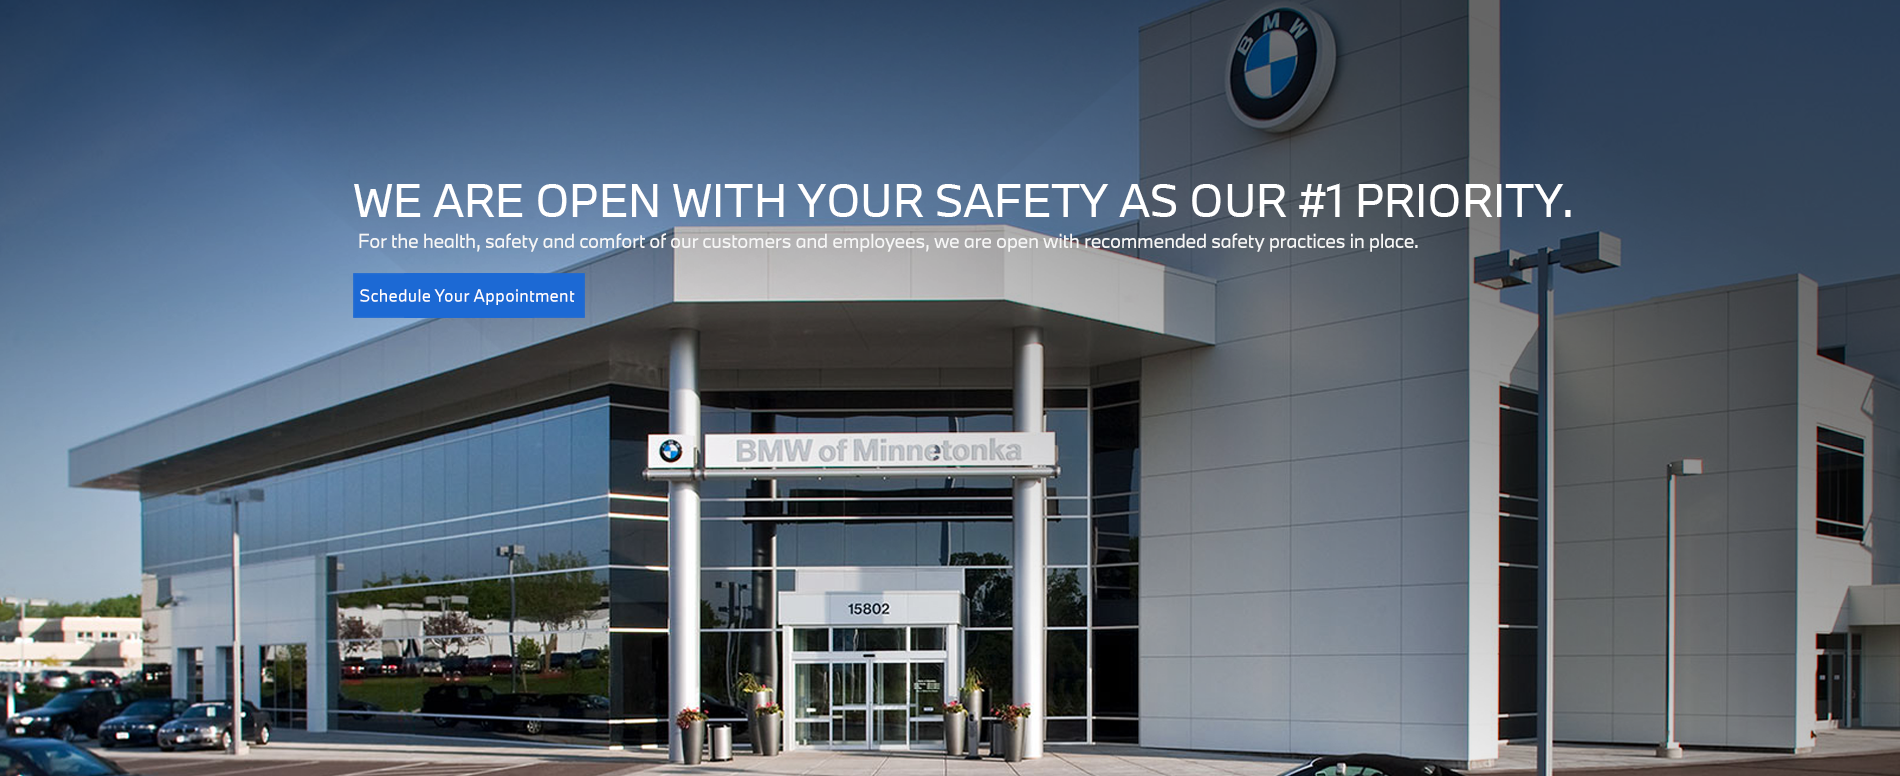 BMW of Minnetonka is open with your safety as our #1 Priority